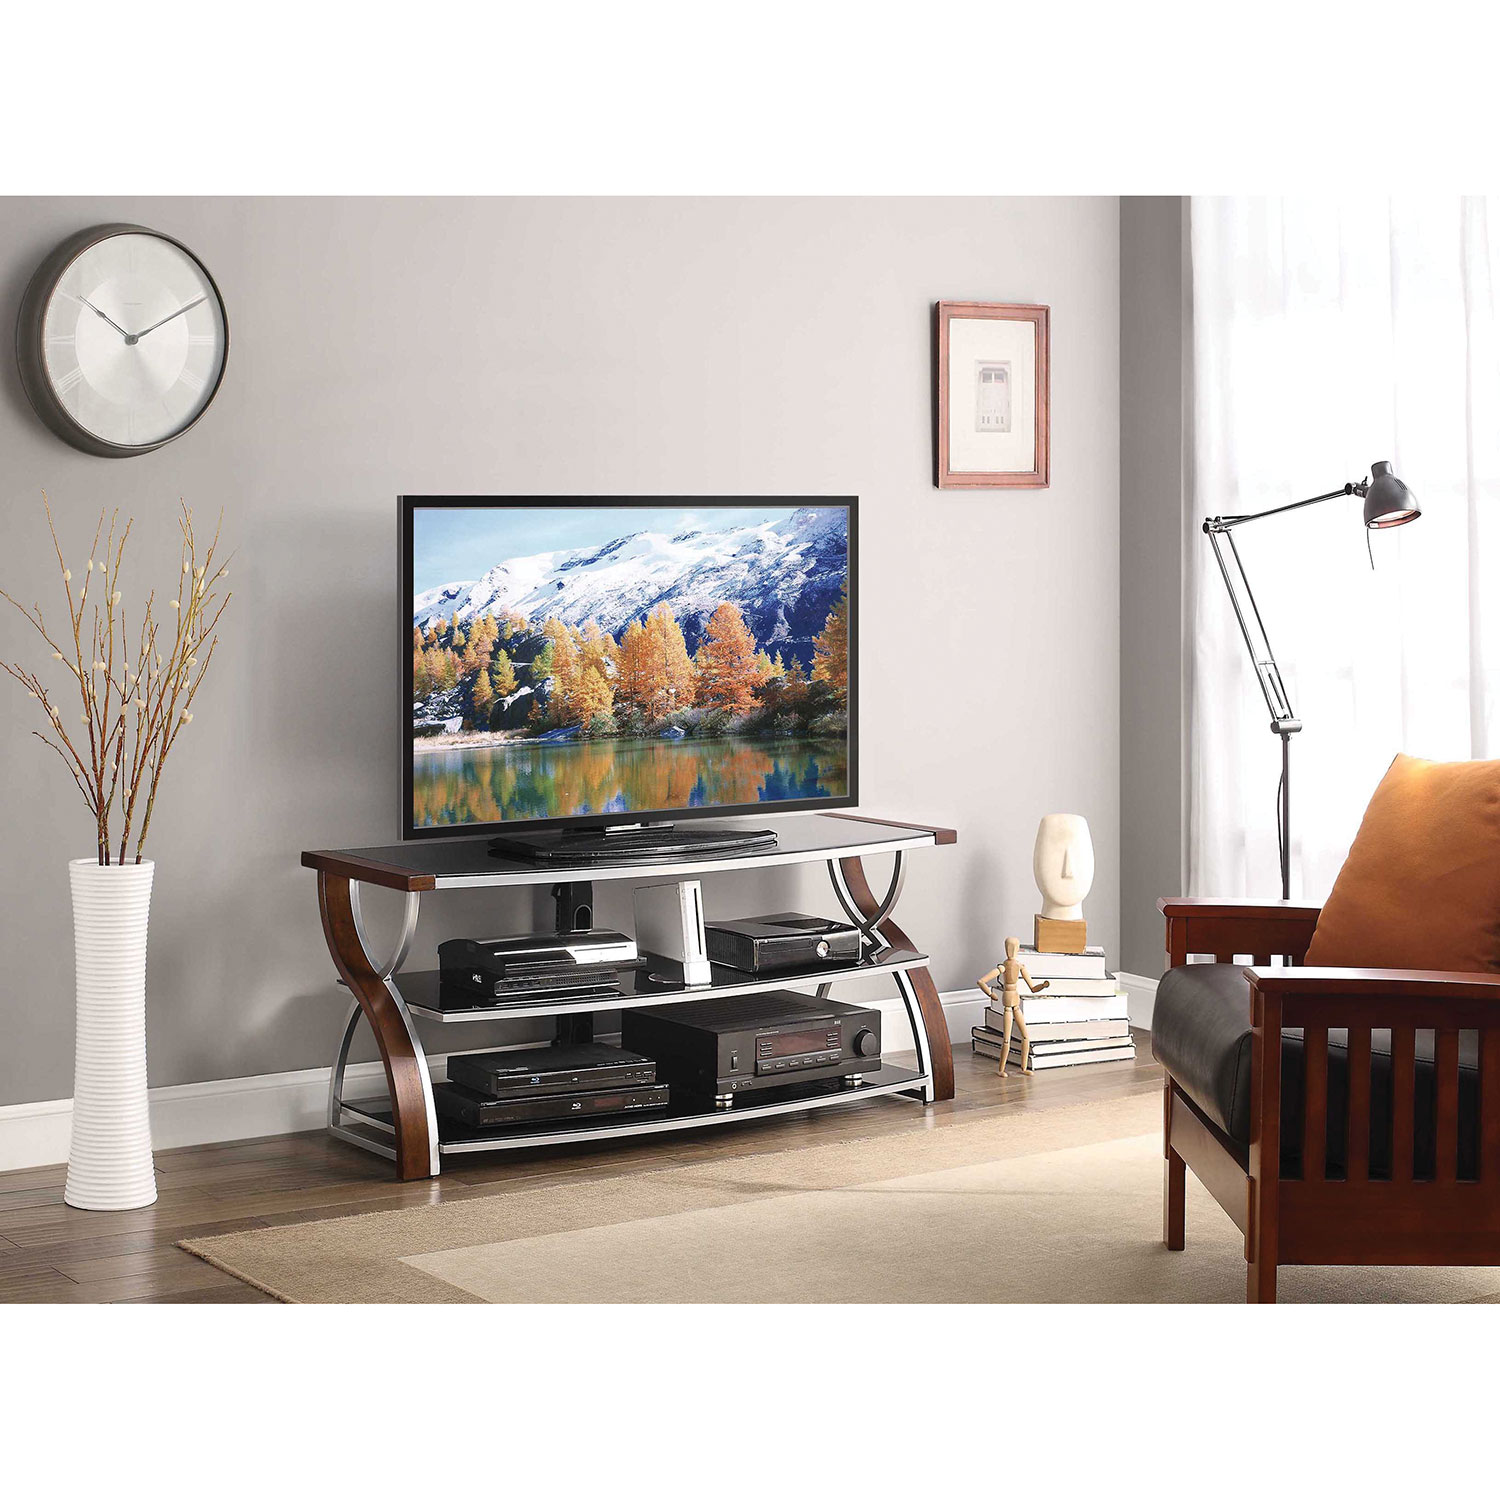 whalen in tv stand for tvs up to  (bbcxlnv)  nova  tv  - whalen in tv stand for tvs up to  (bbcxlnv)  nova  tv stands best buy canada